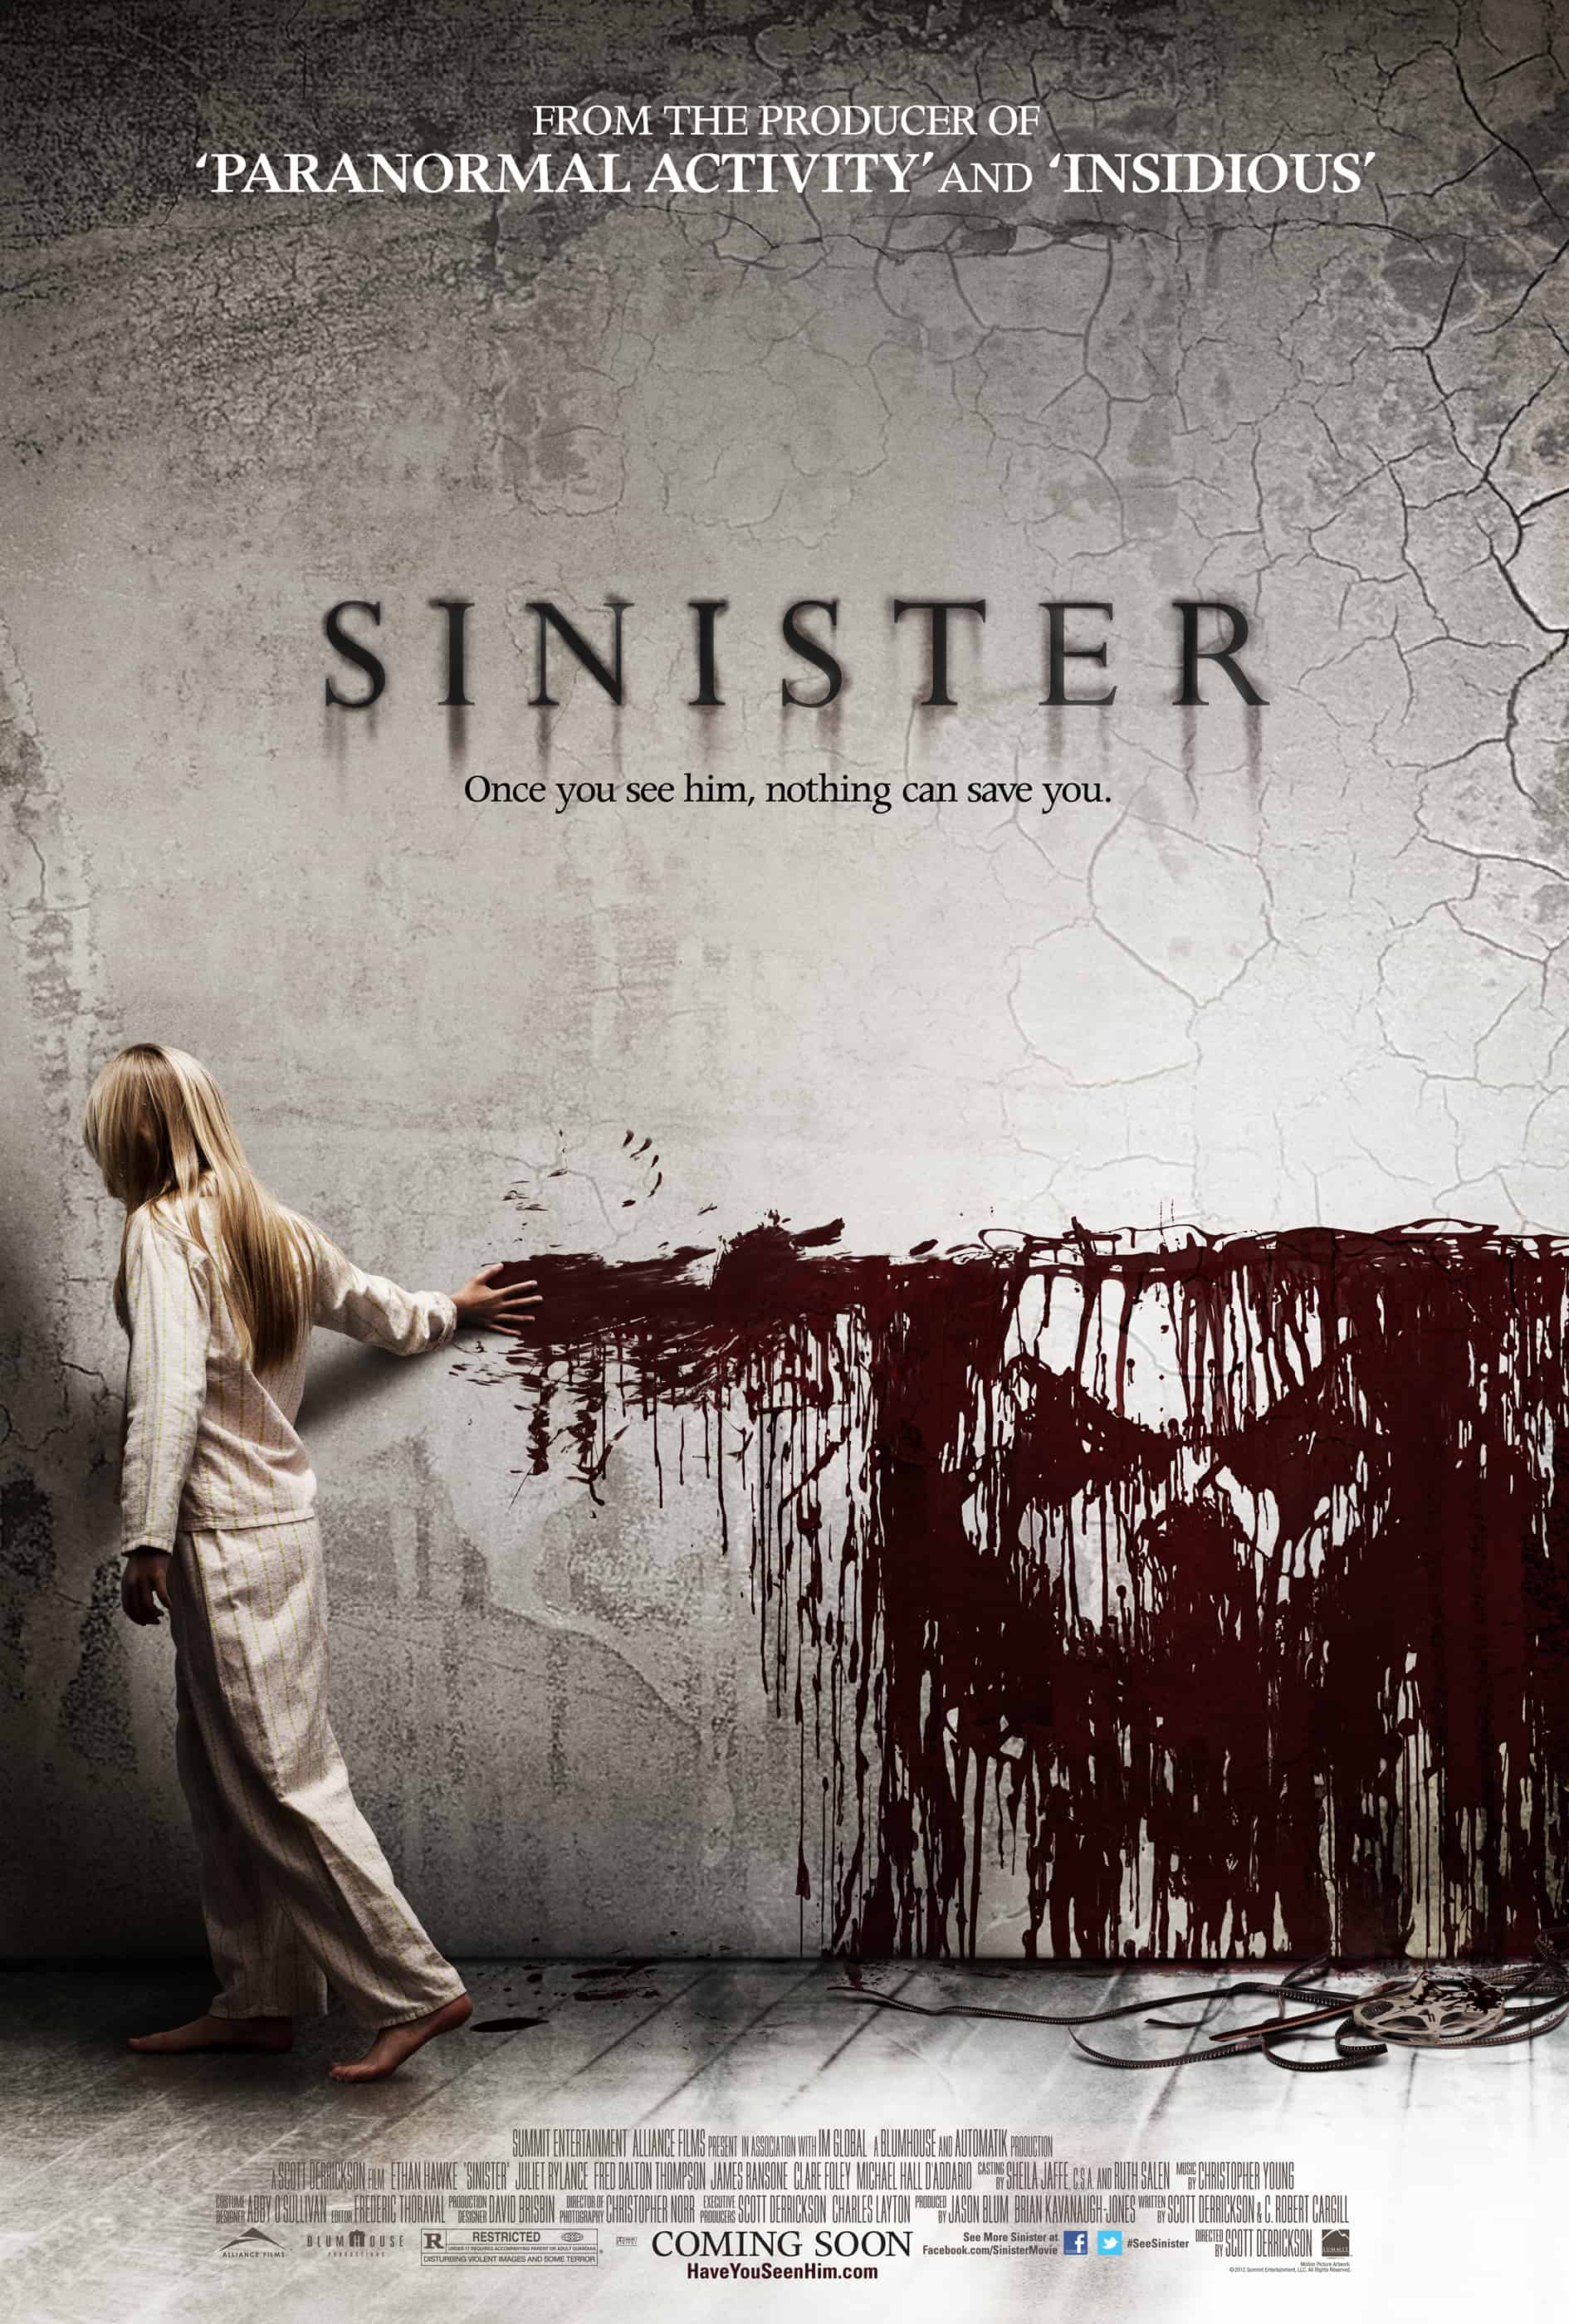 Movie Posters We Love: Sinister